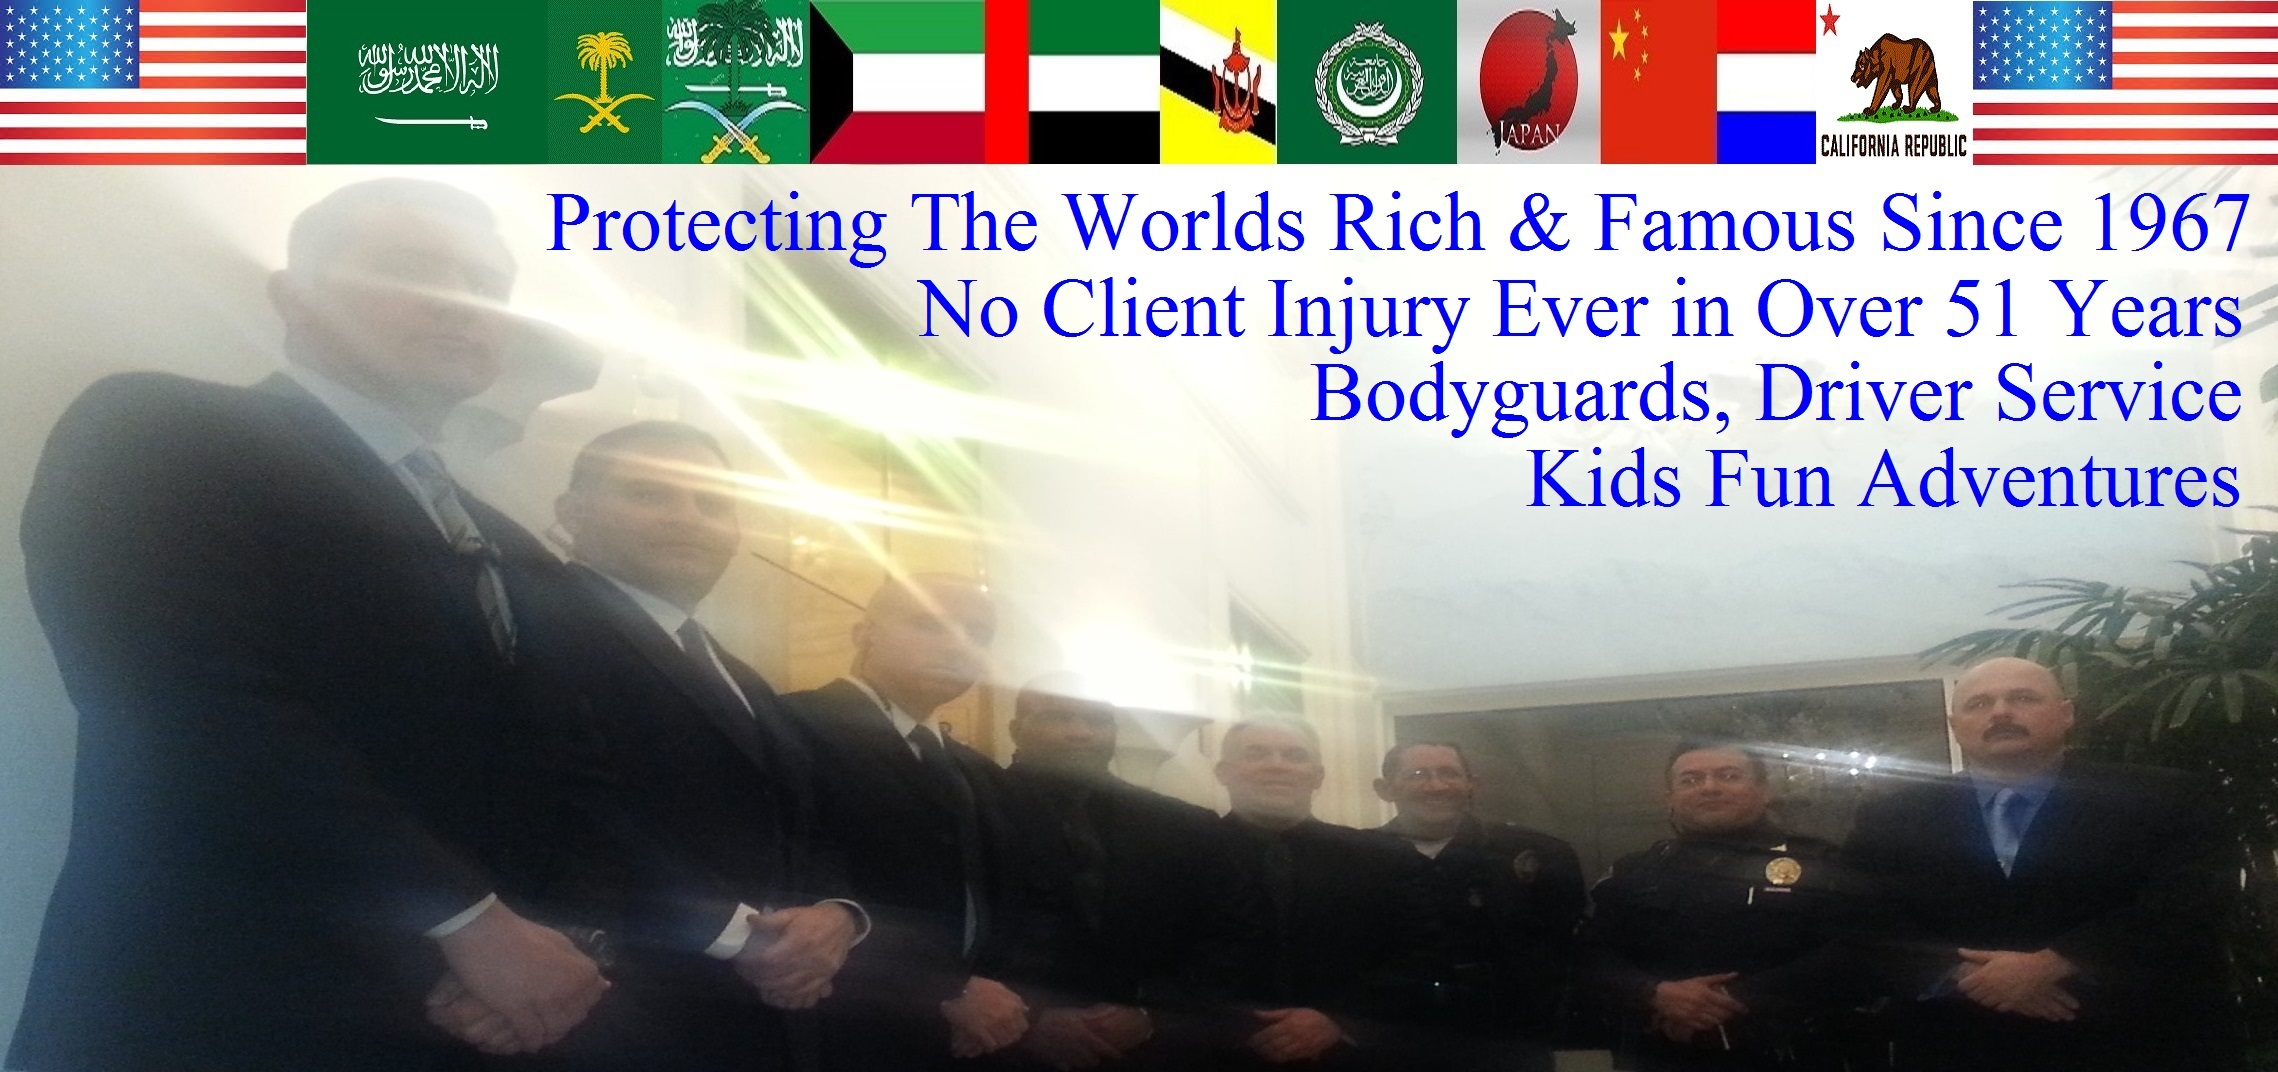 Celebrity Bodyguard Kris Herzog and The Bodyguard Group of Beverly Hills estate security guards 90210, Los Angeles Celebrity Bodyguards for hire